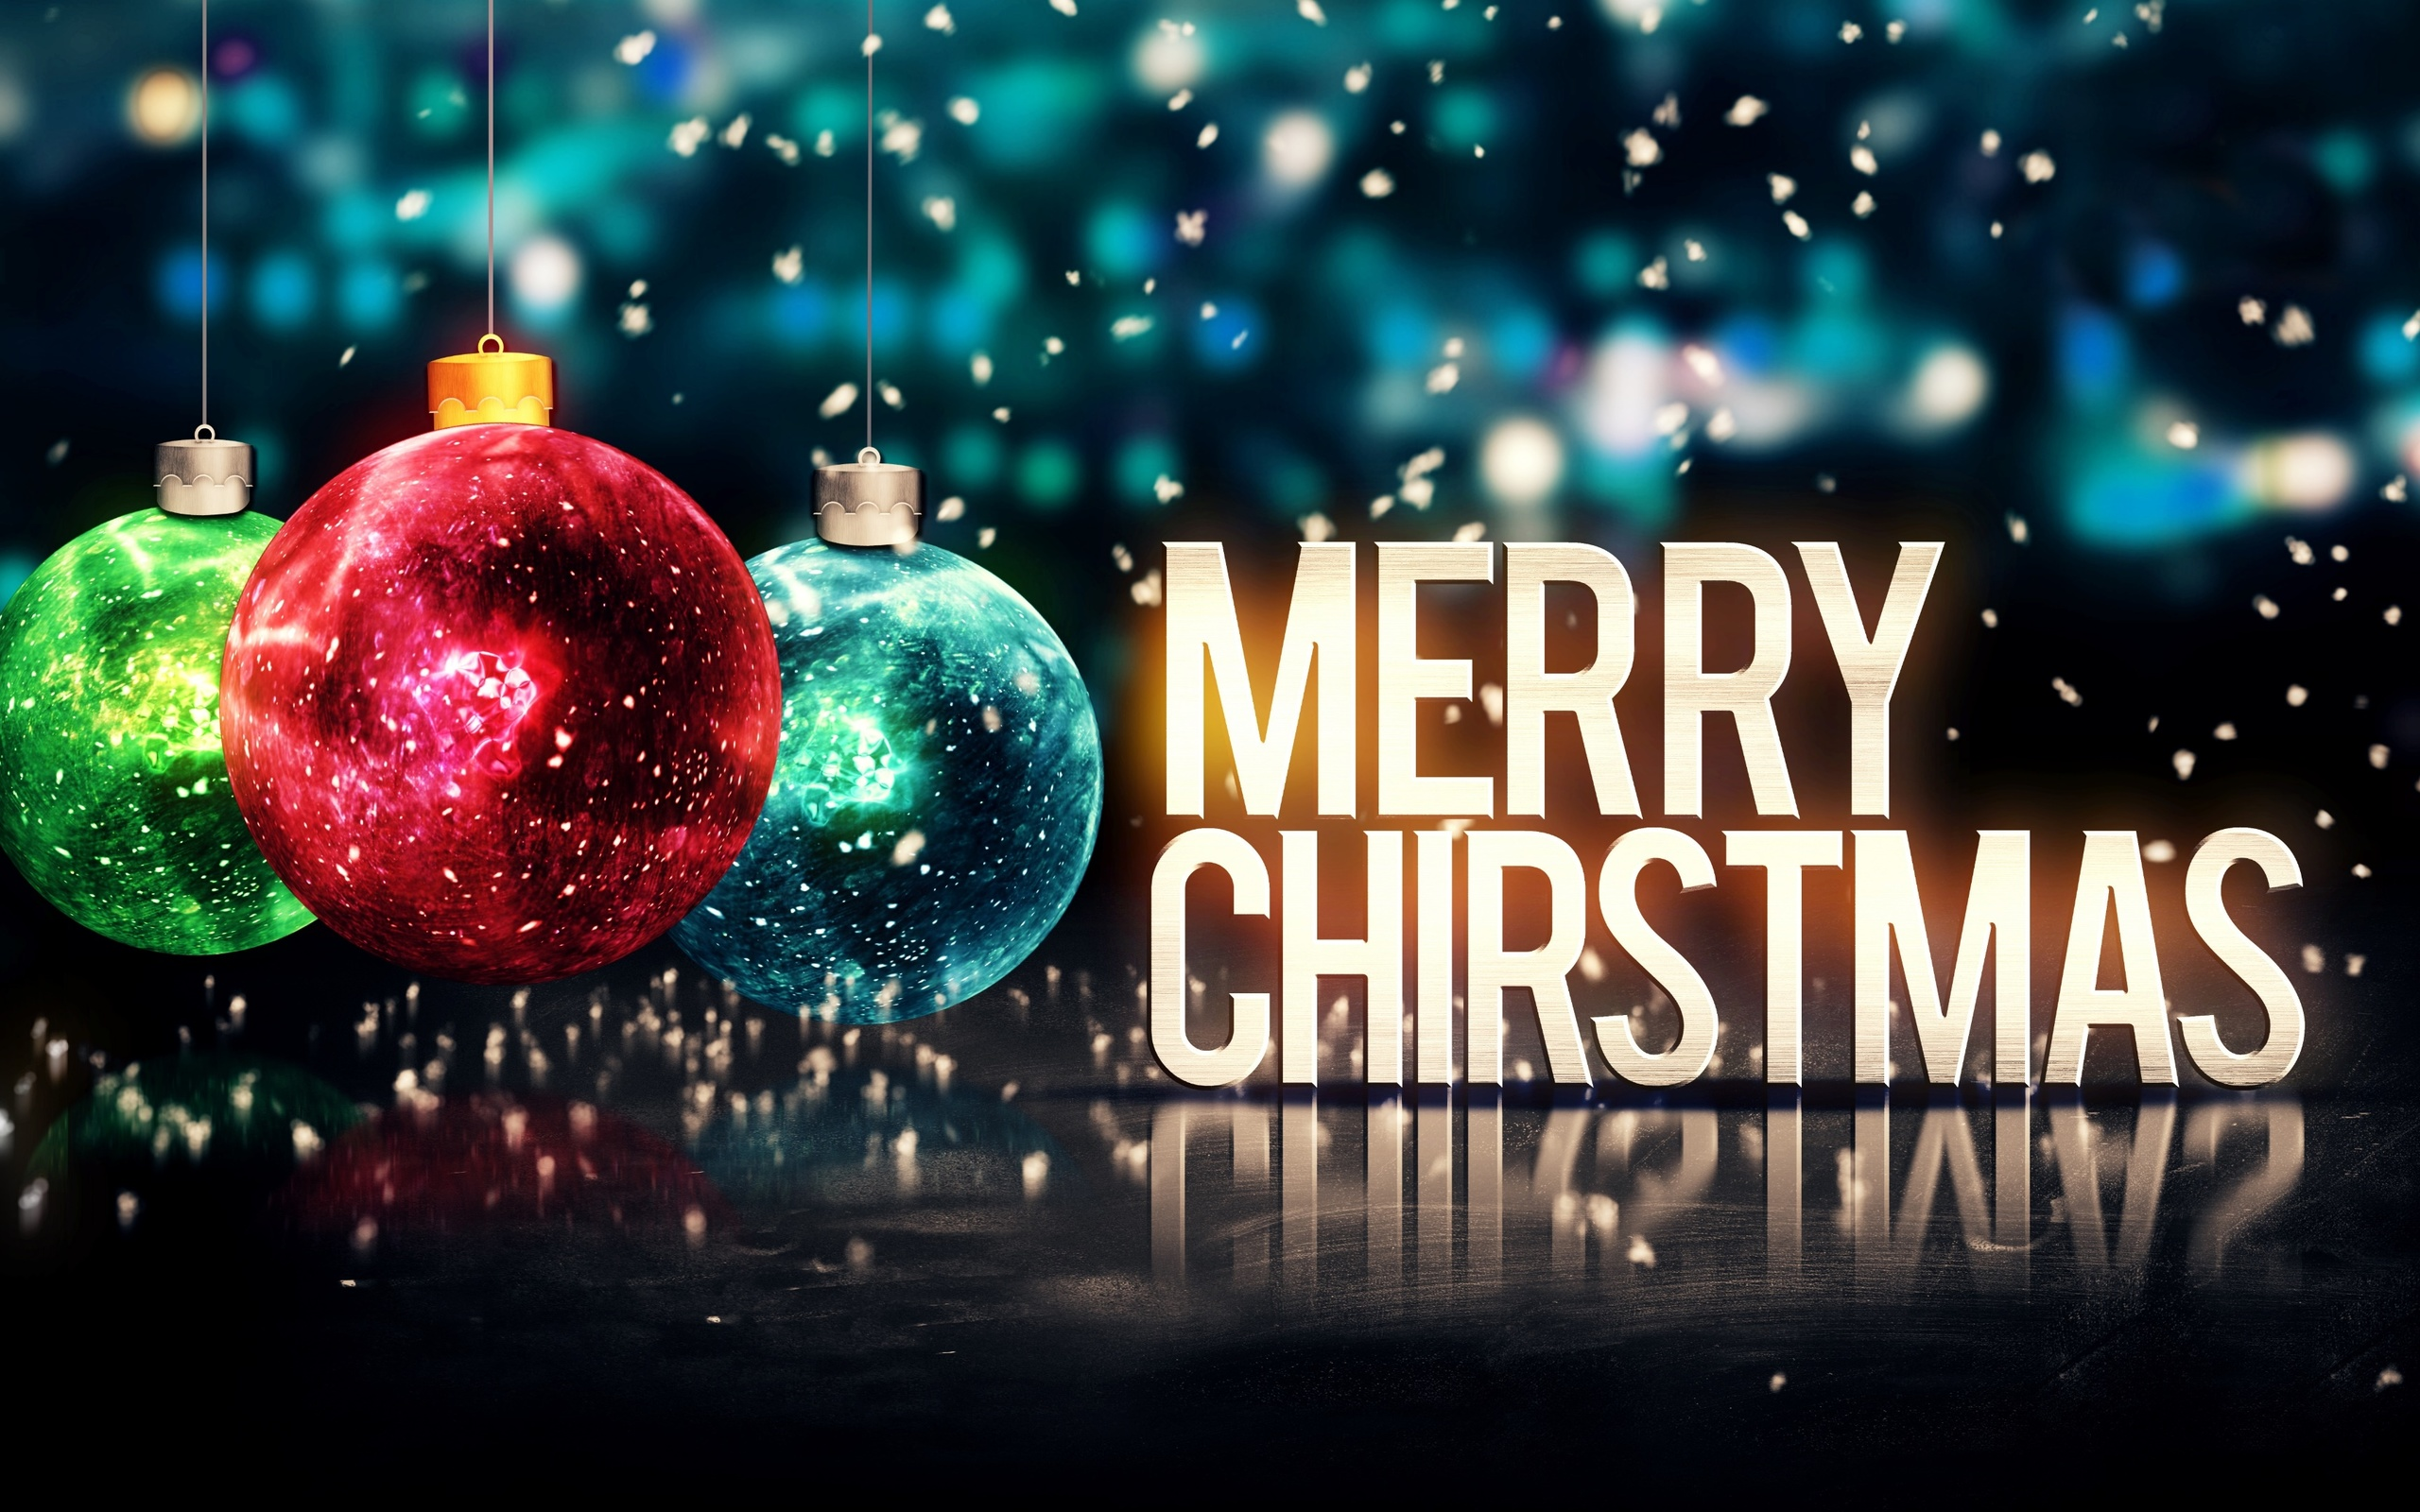 Merry Christmas background 4K Ultra HD wallpaper 4k WallpaperNet 2560x1600